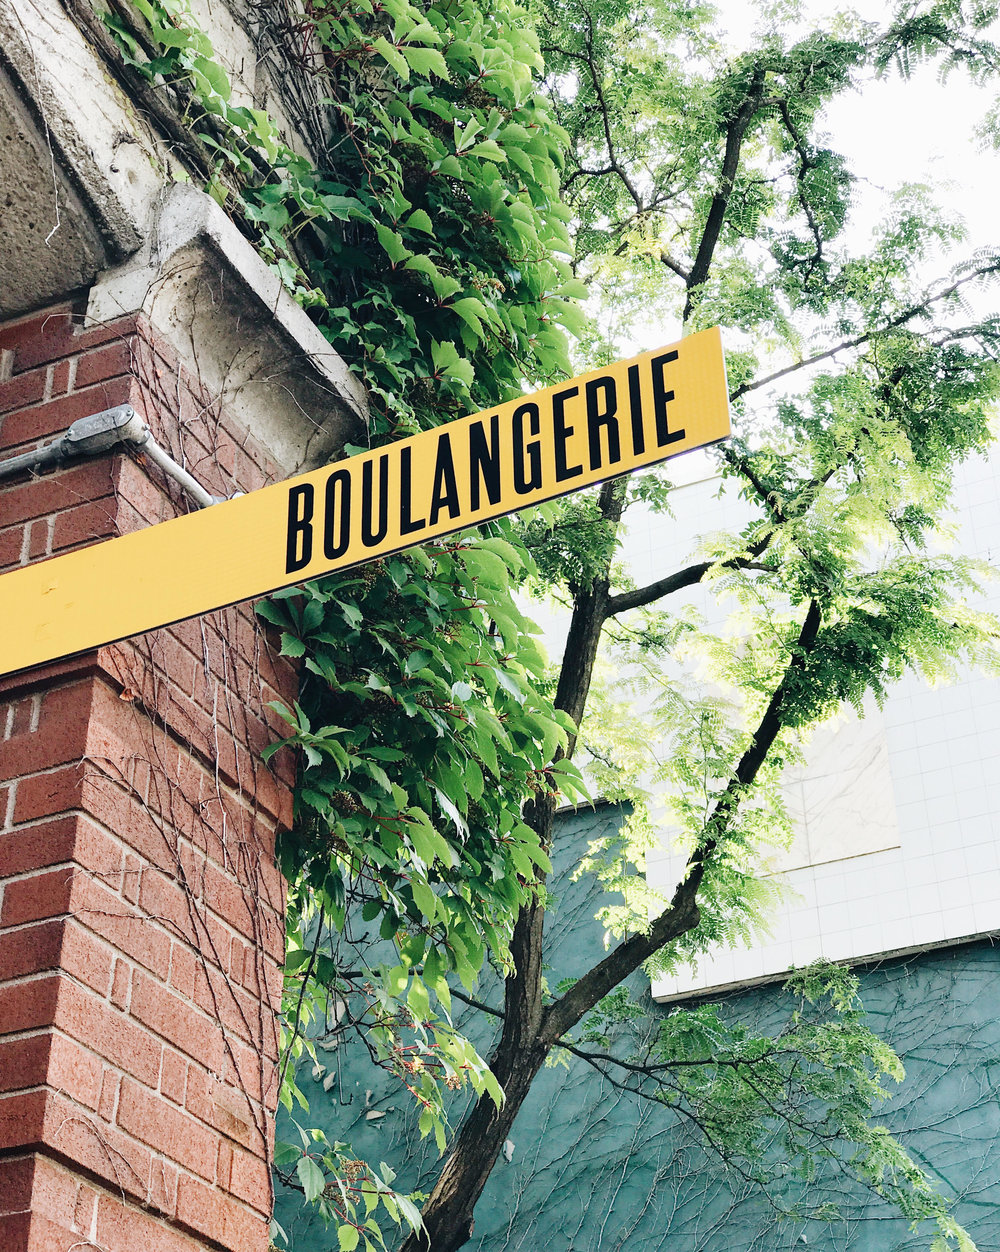 Boulangerie Guillaume, Nyla Free Designs Travels Montreal, Weekend Guide, Travel Tips, Canada, Calgary Interior Designer